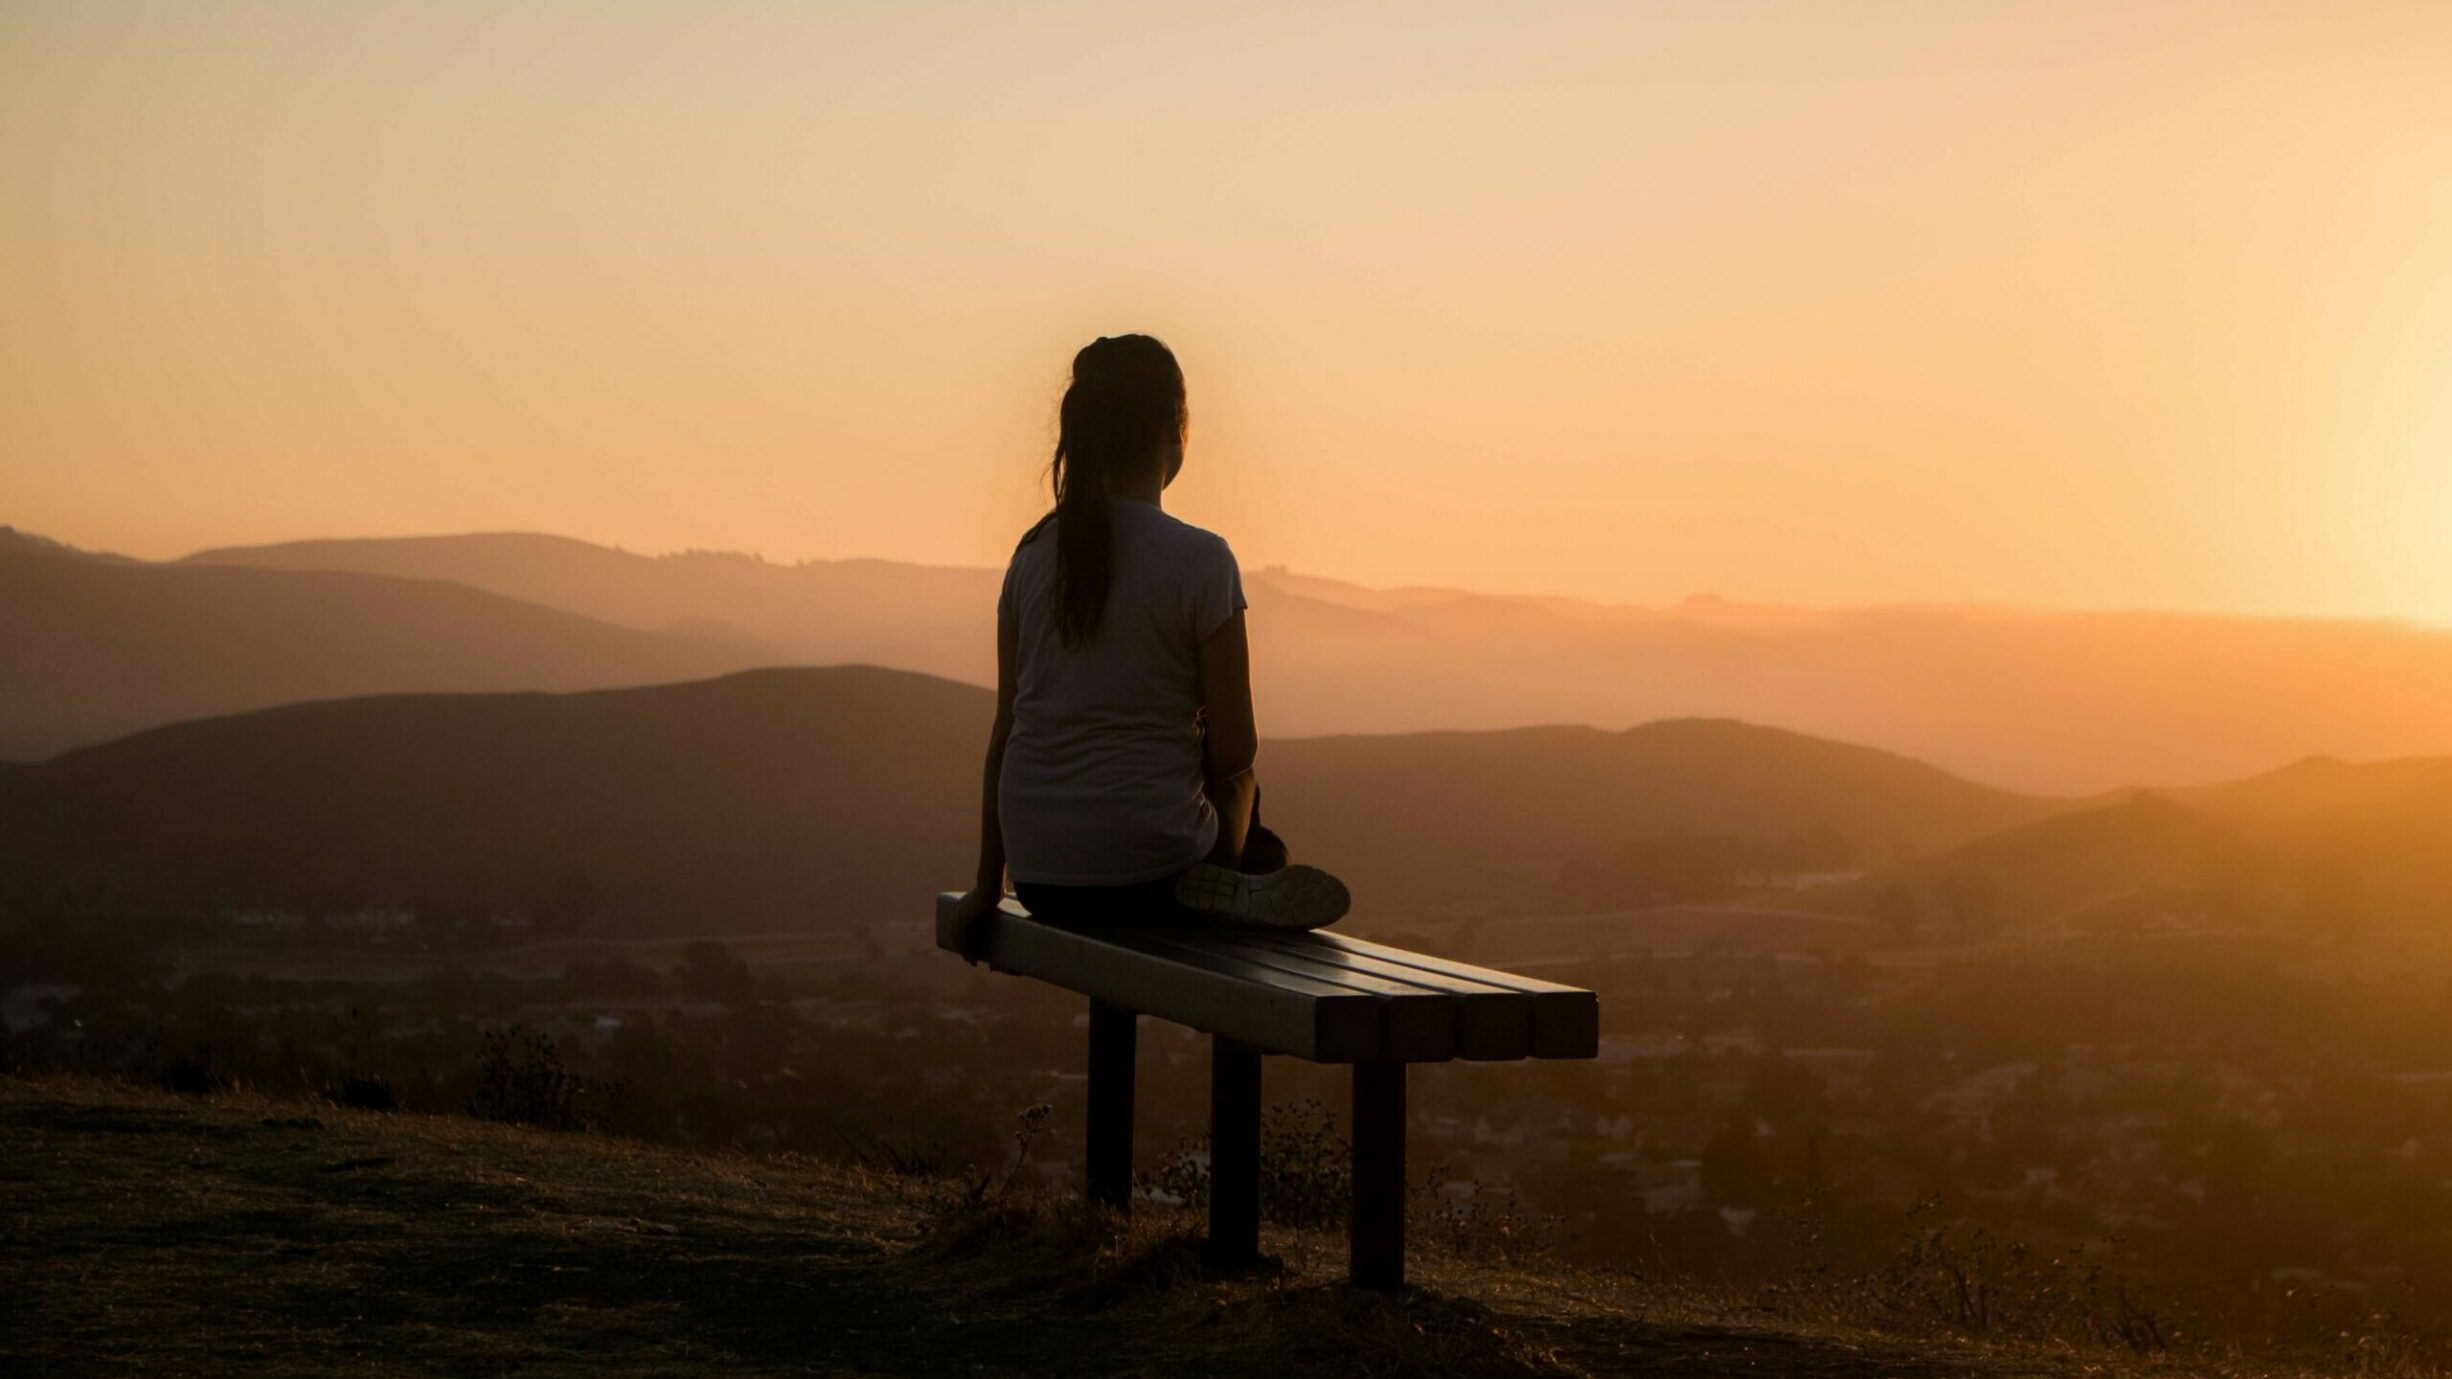 woman meditating on a bench overlooking the mountains during sunset